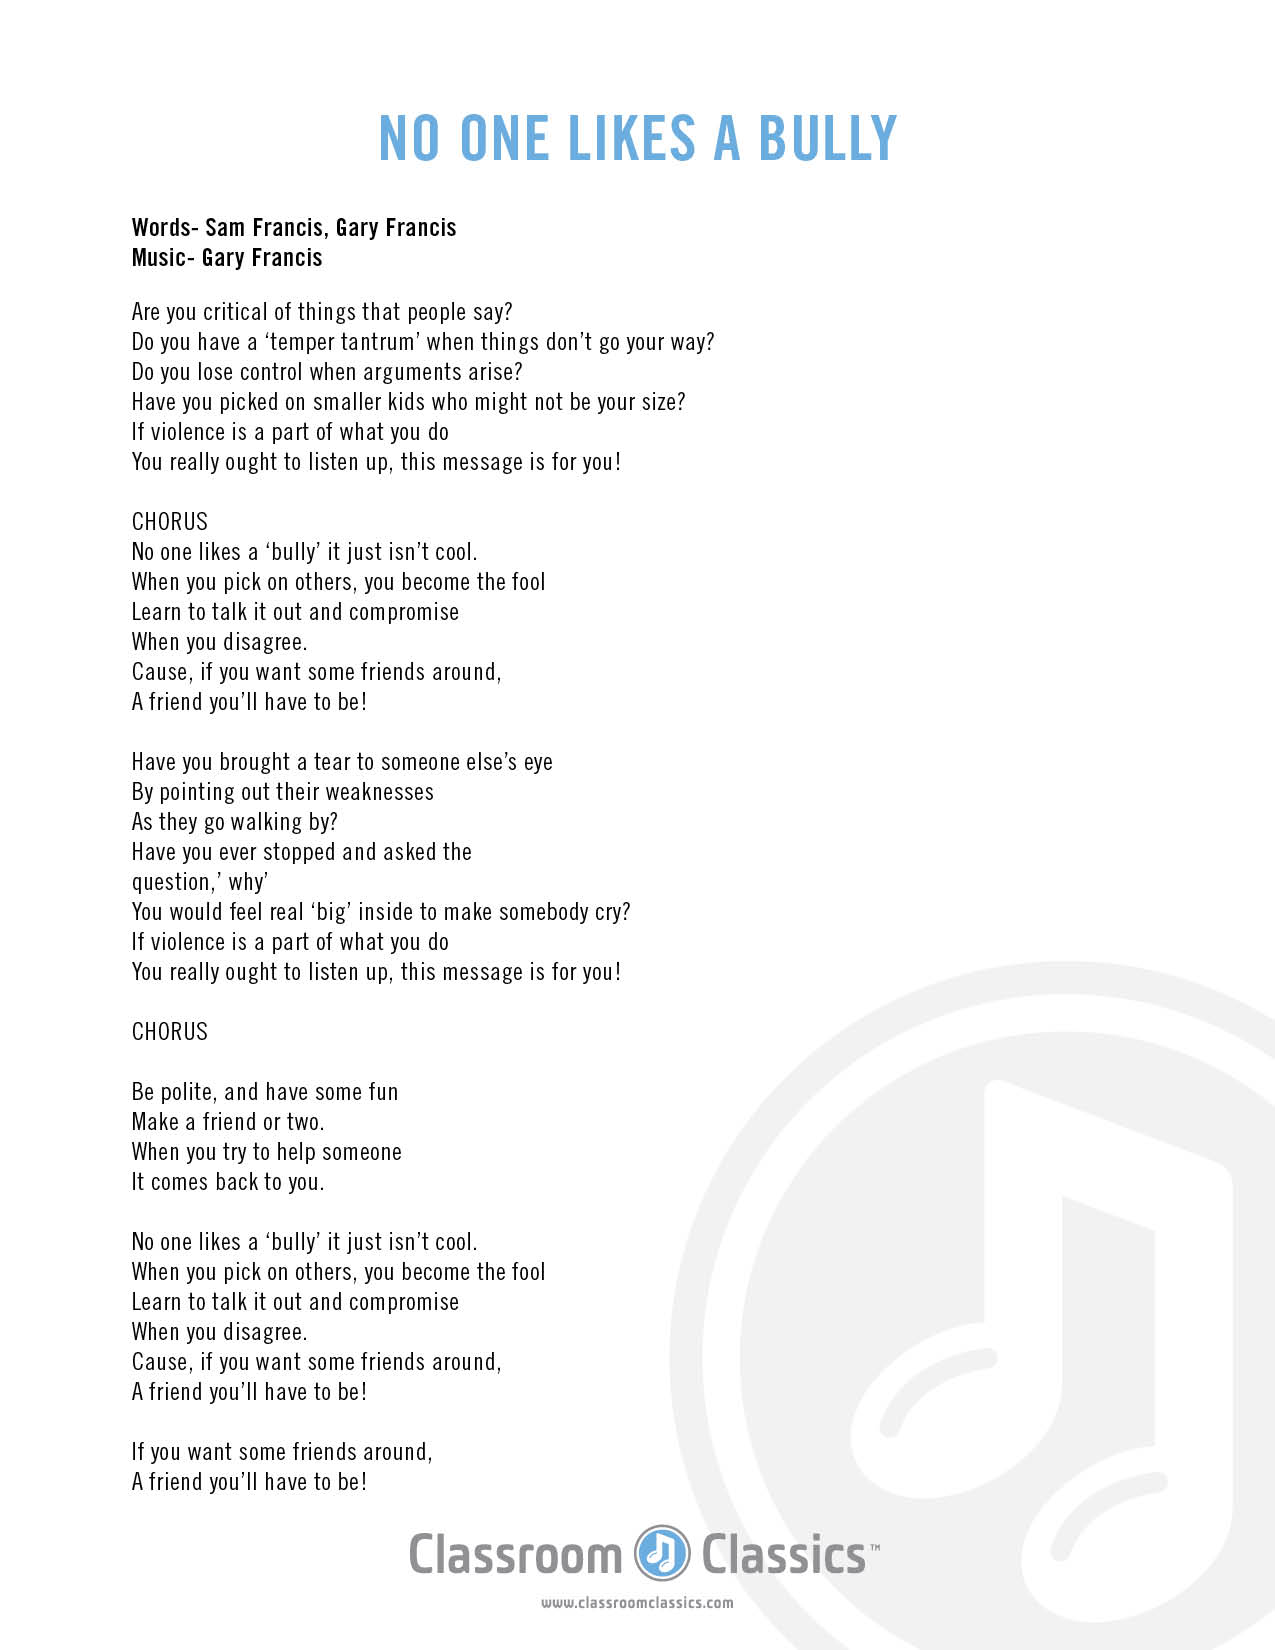 Jada Facer - Your Own Way (Anti Bullying) Lyrics | MetroLyrics